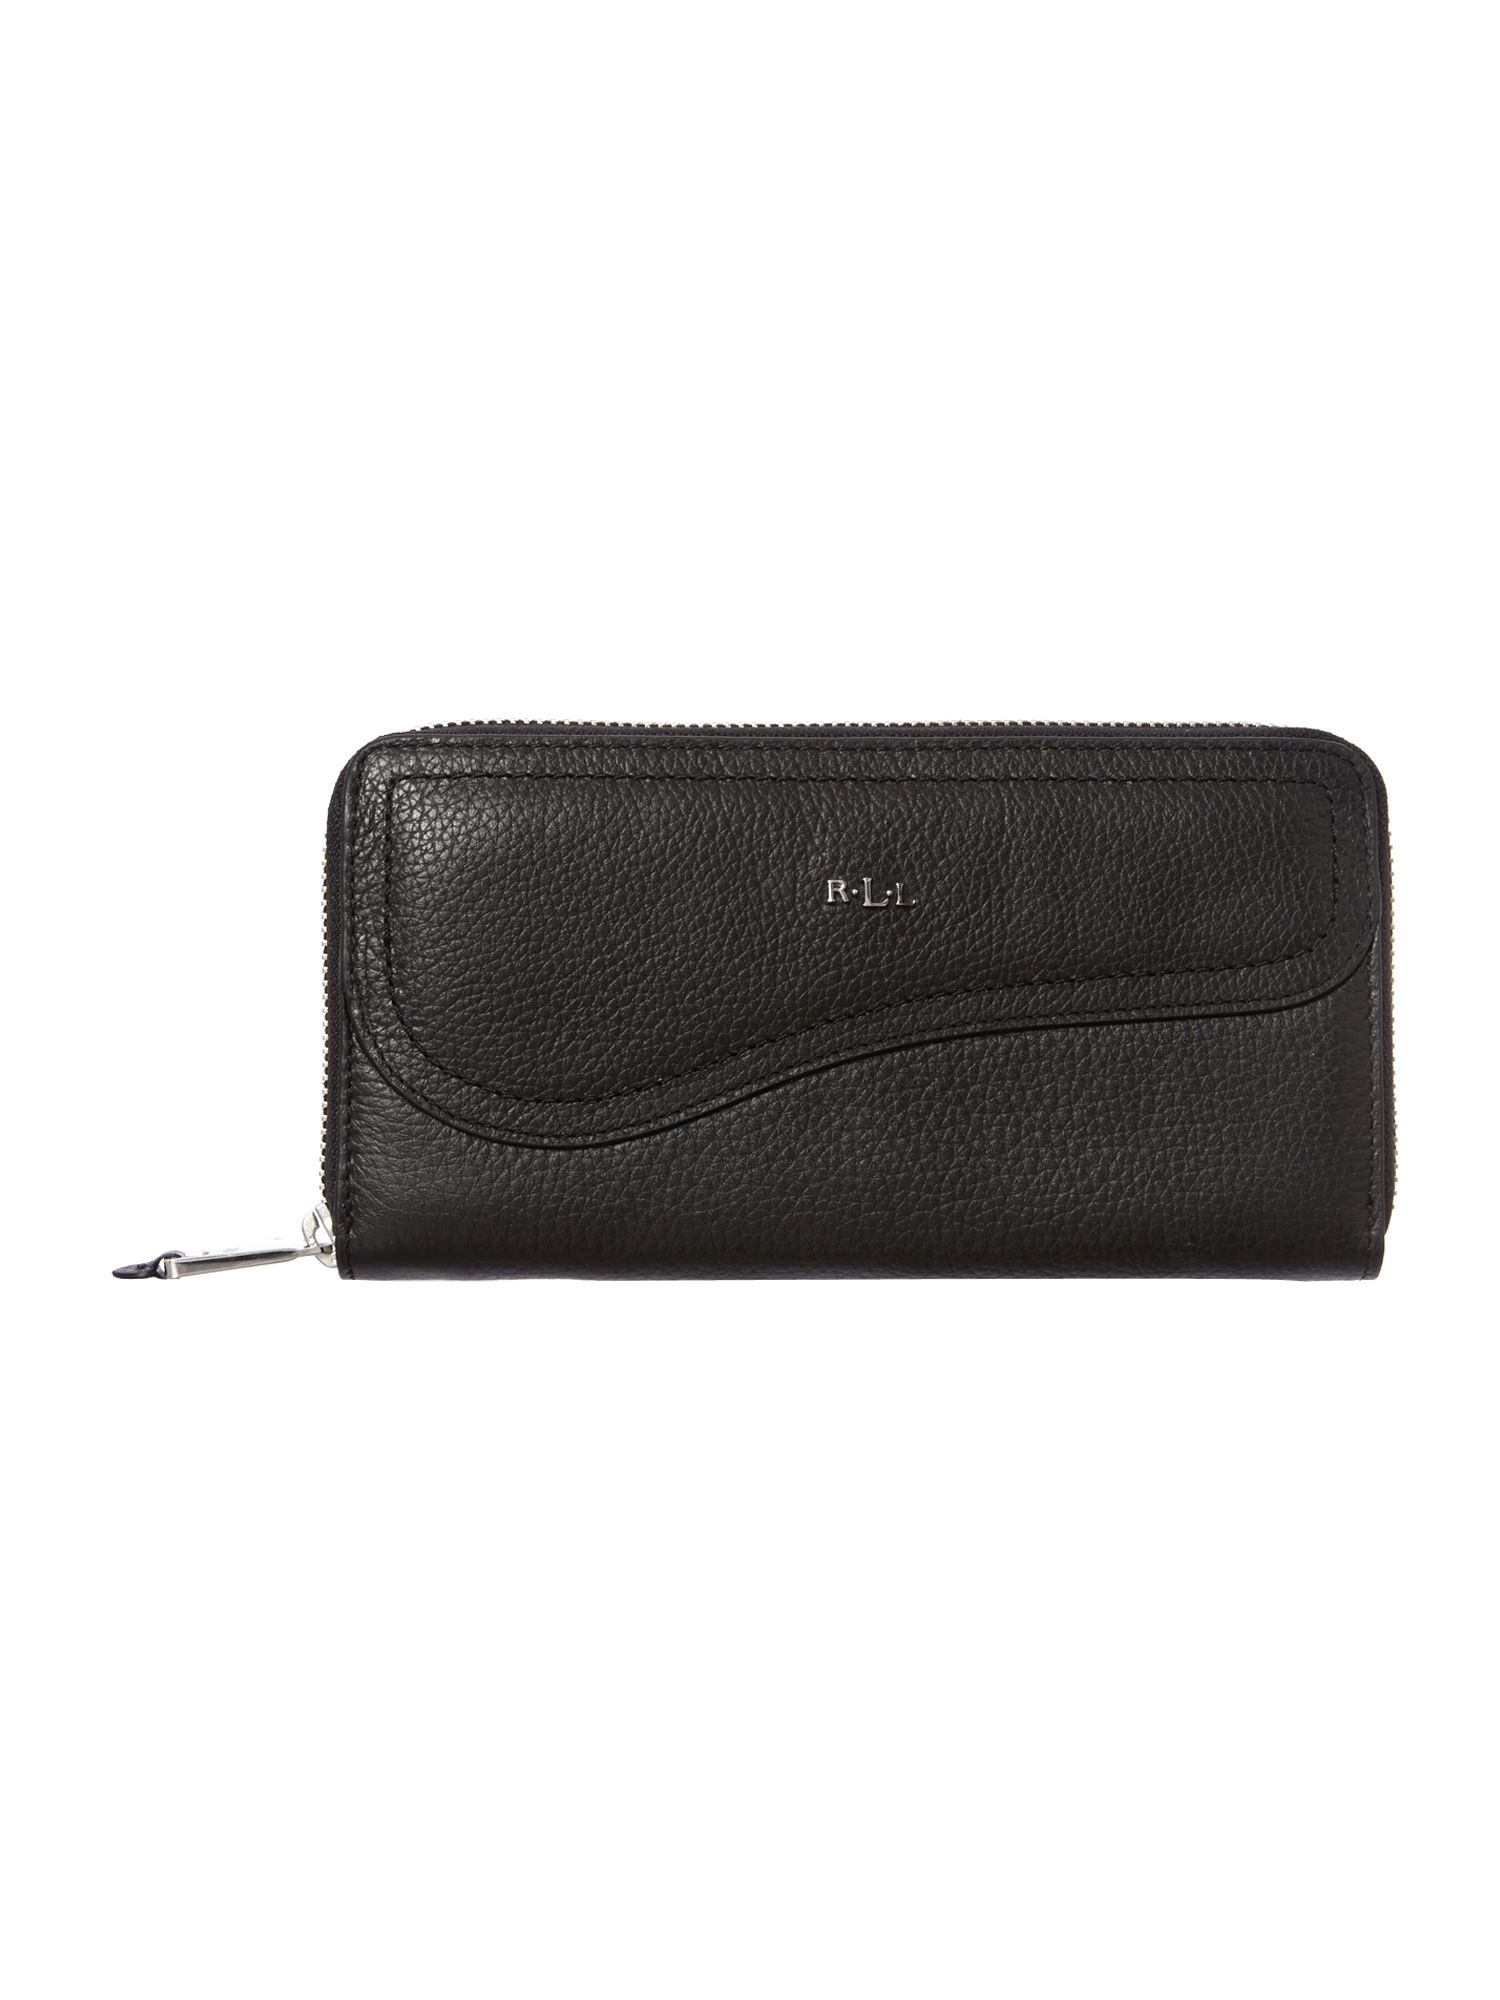 Marlow black flap over purse